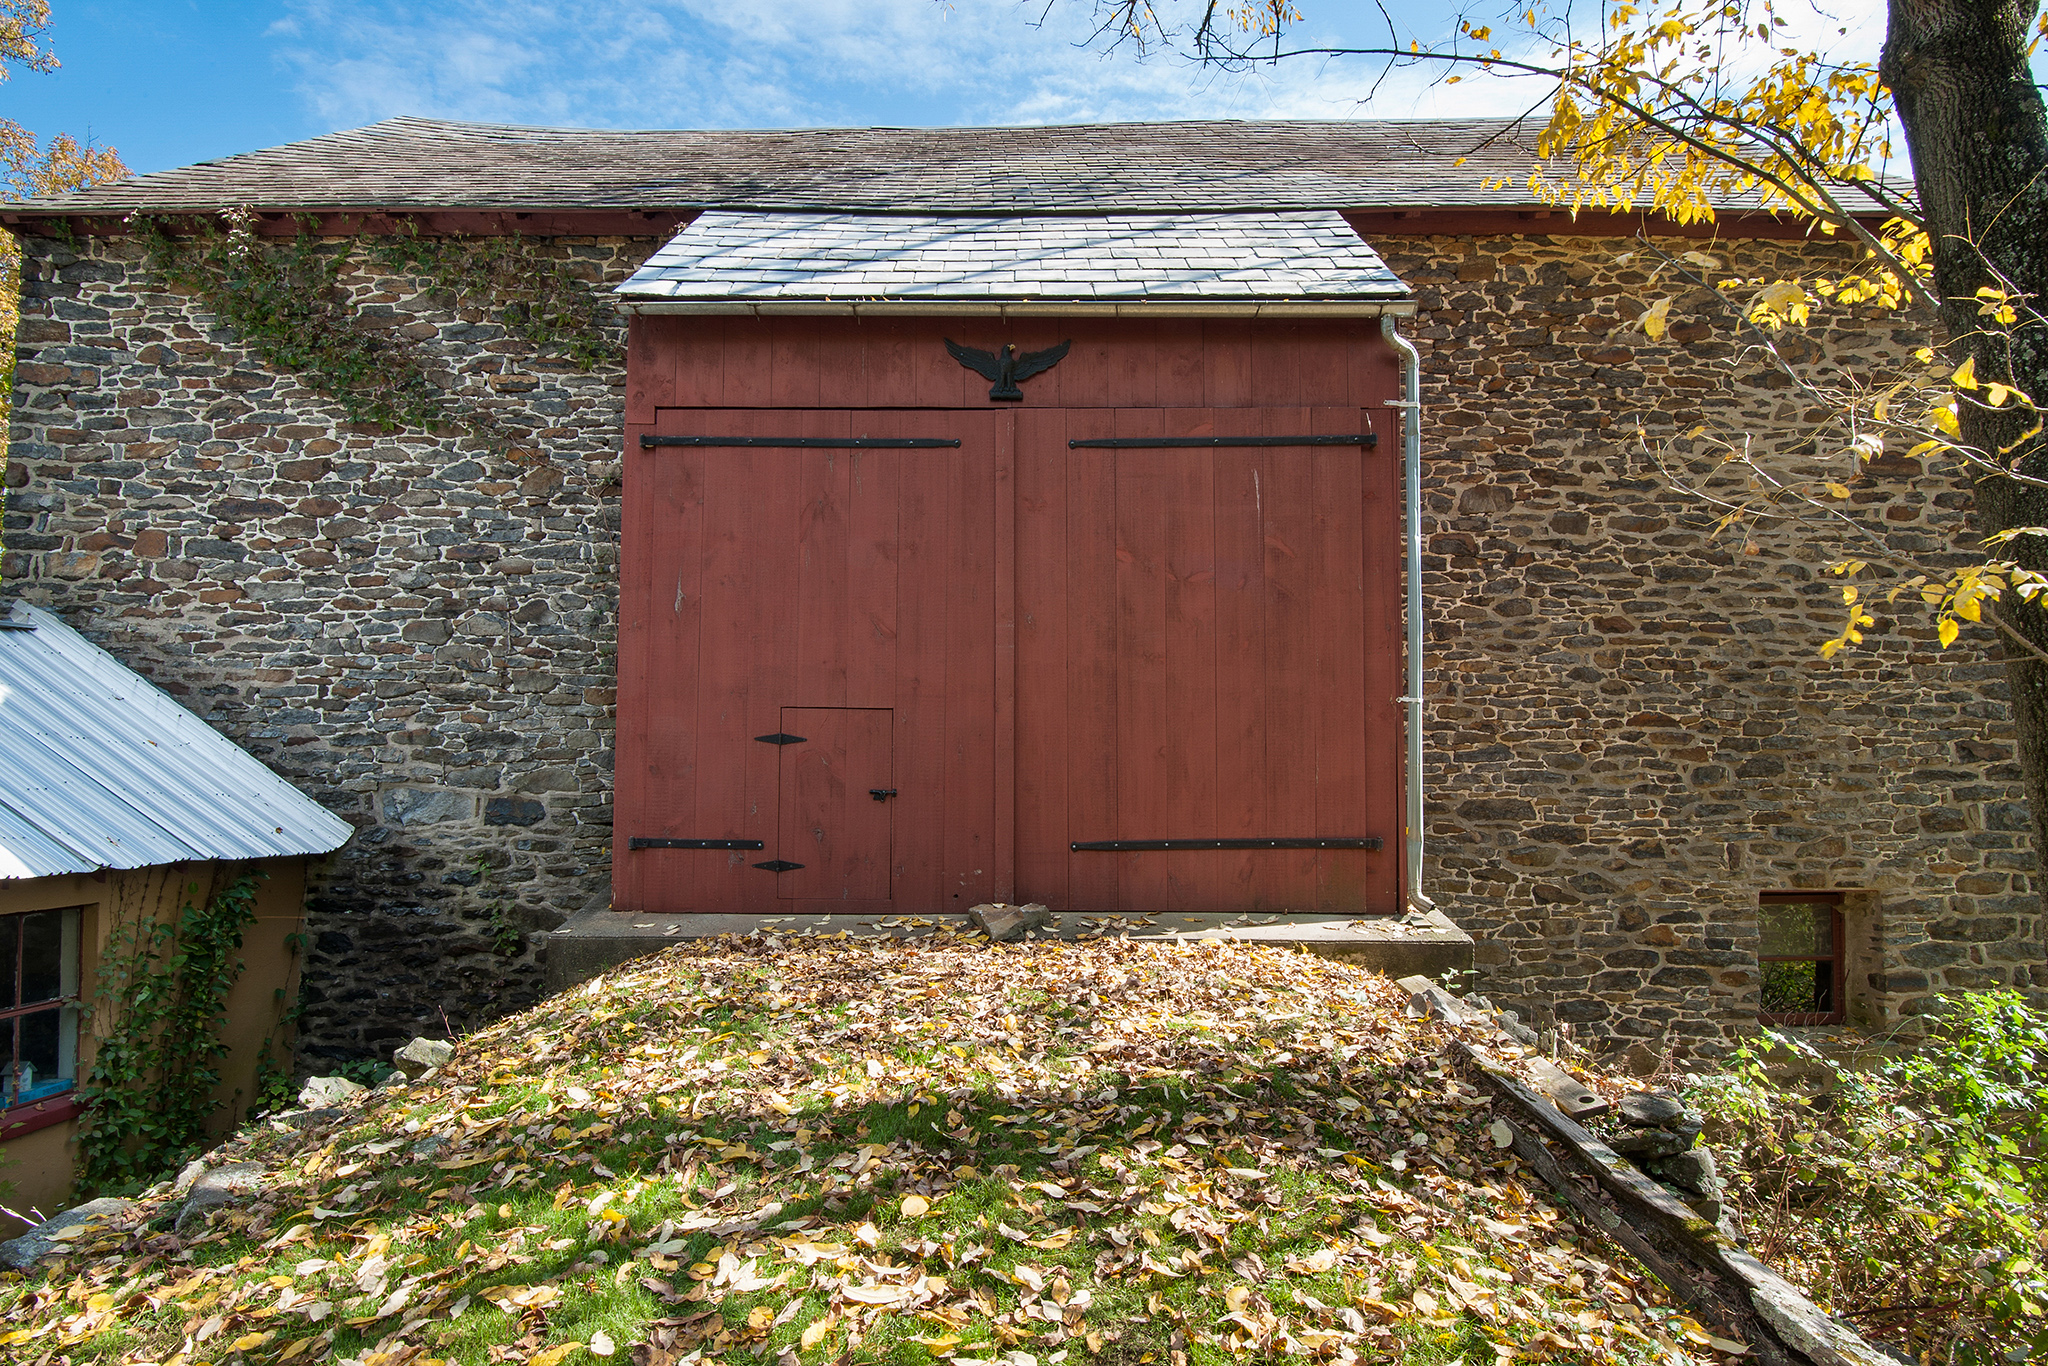 Bank BArn Bucks County |#BankBarnBucksCounty | Stone Barn Bucks County | #StoneBarnBucksCounty